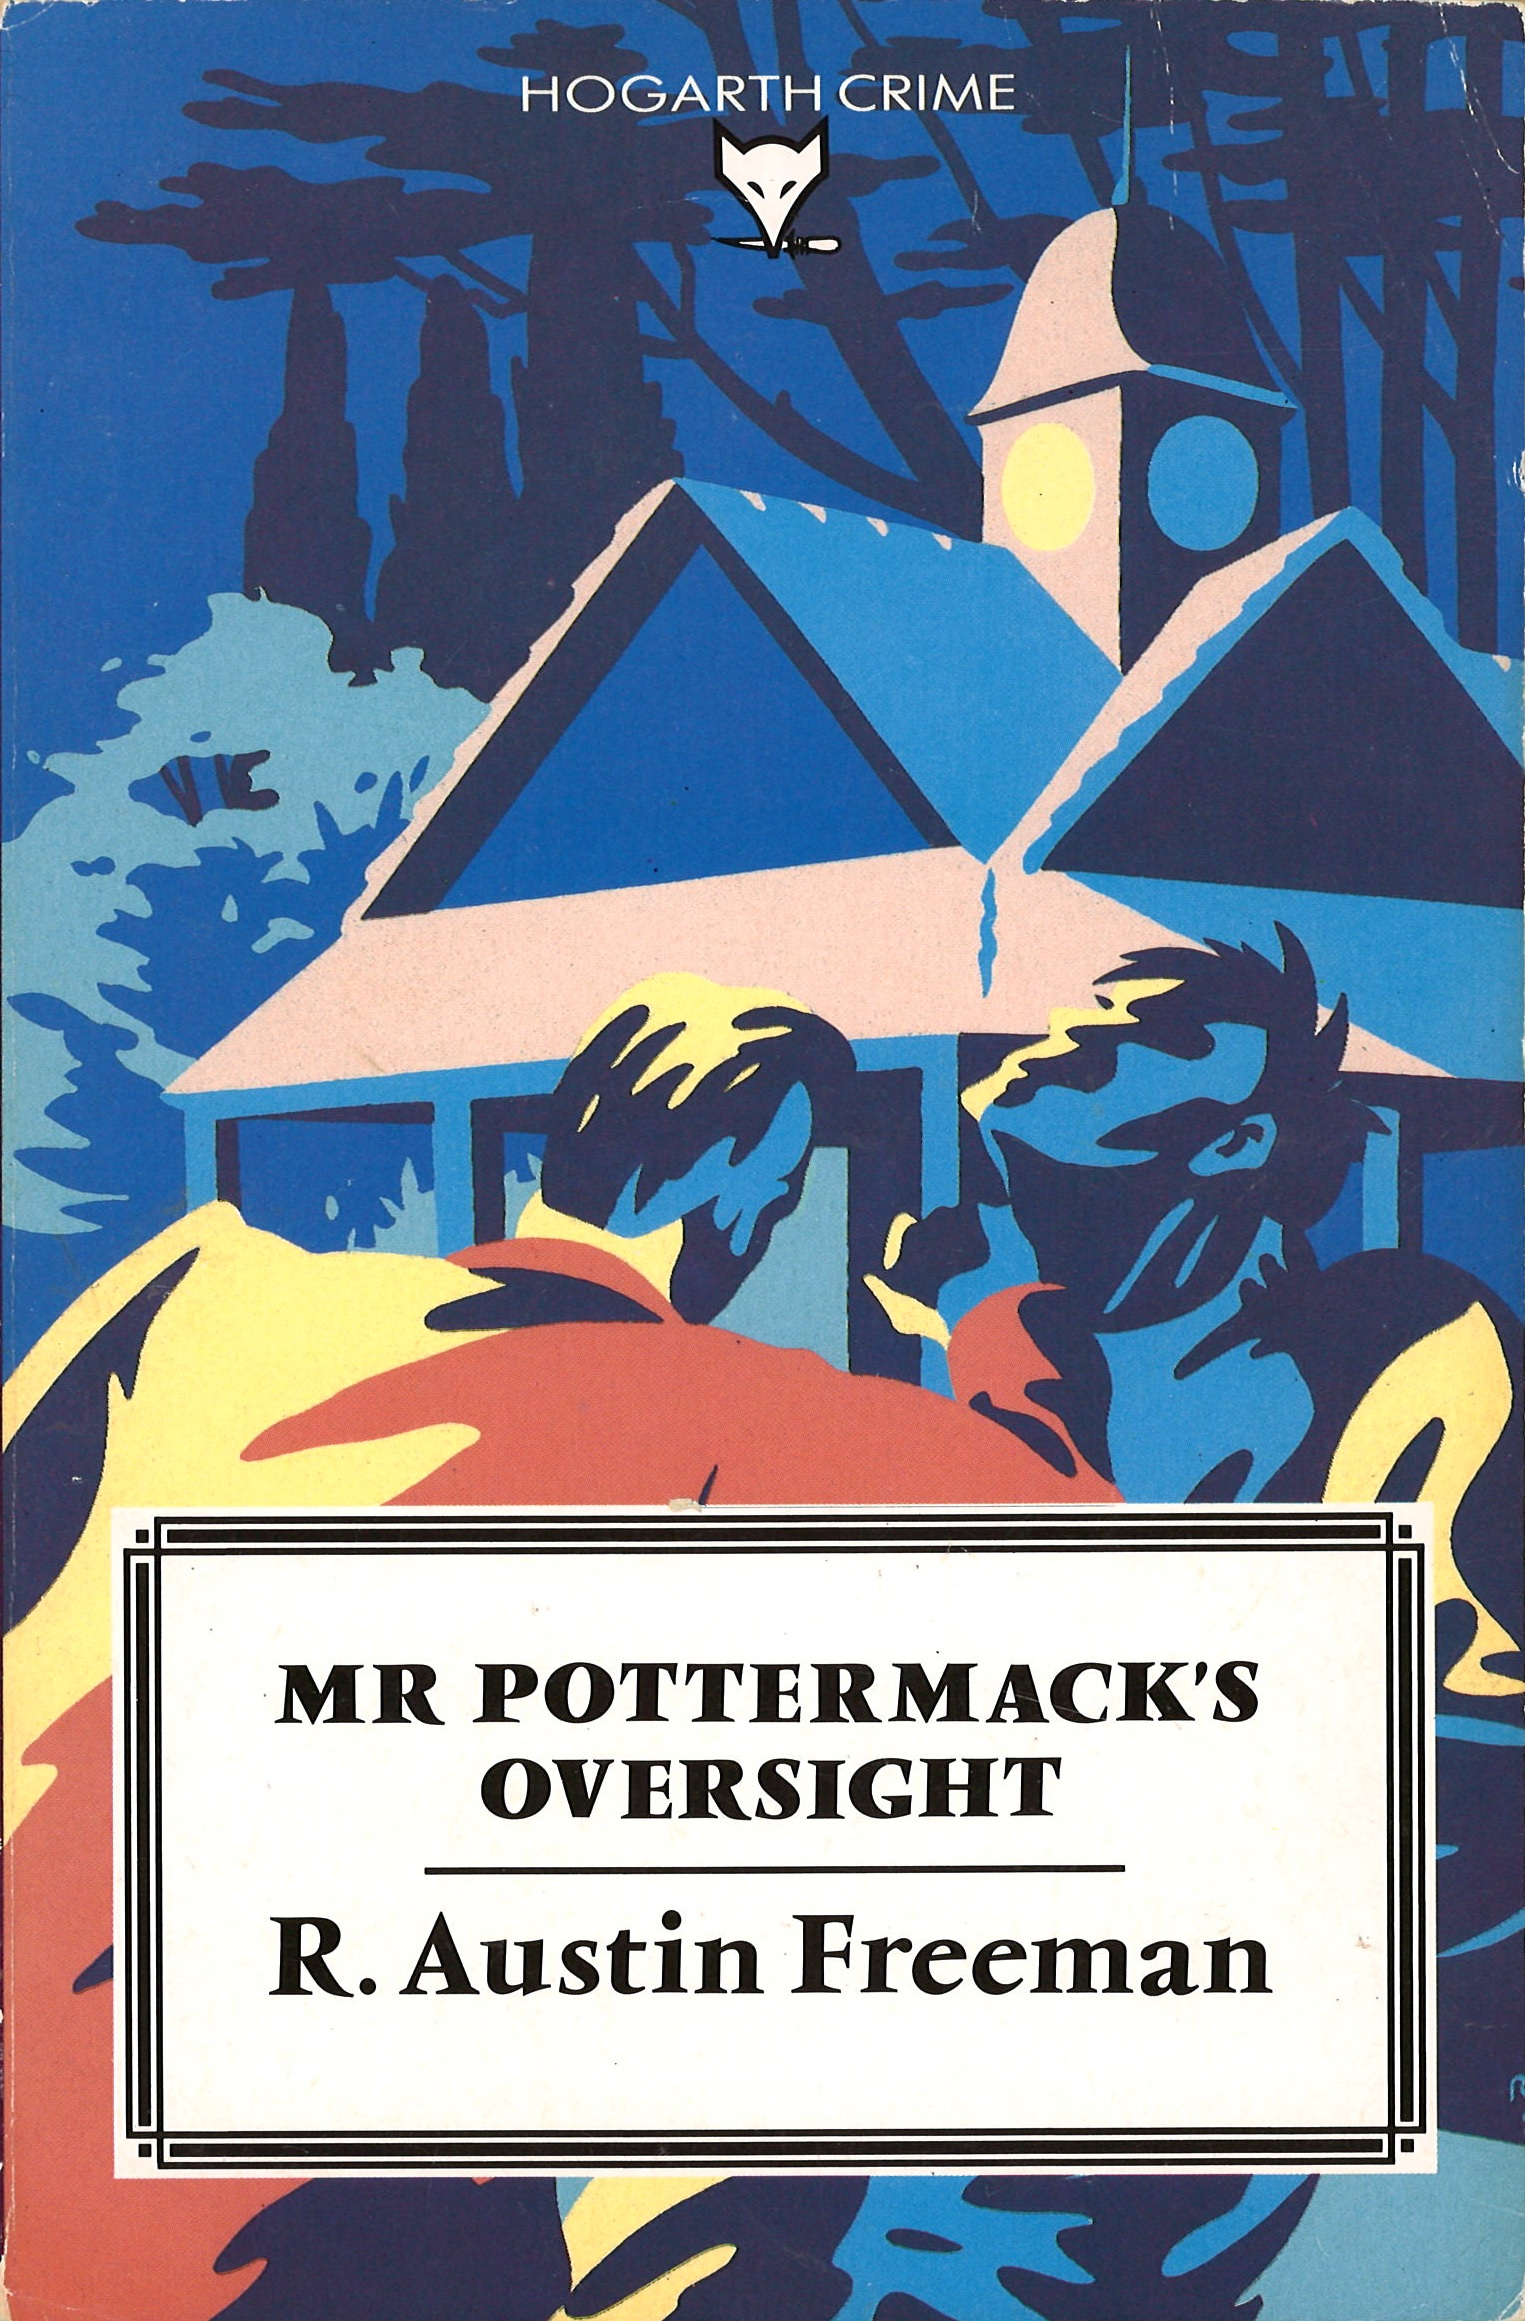 Mr Pottermack's Oversight